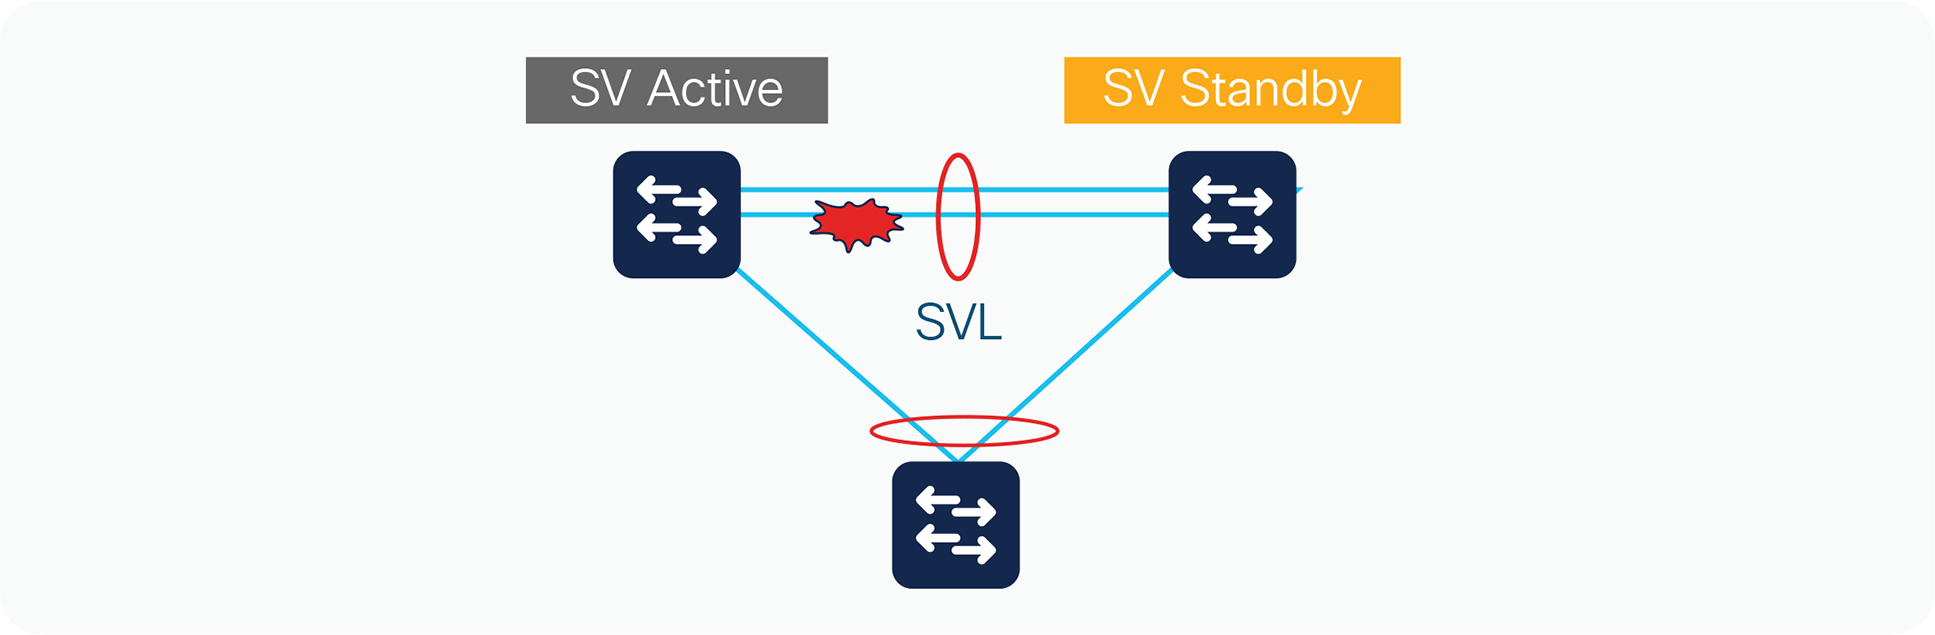 StackWise Virtual link failure